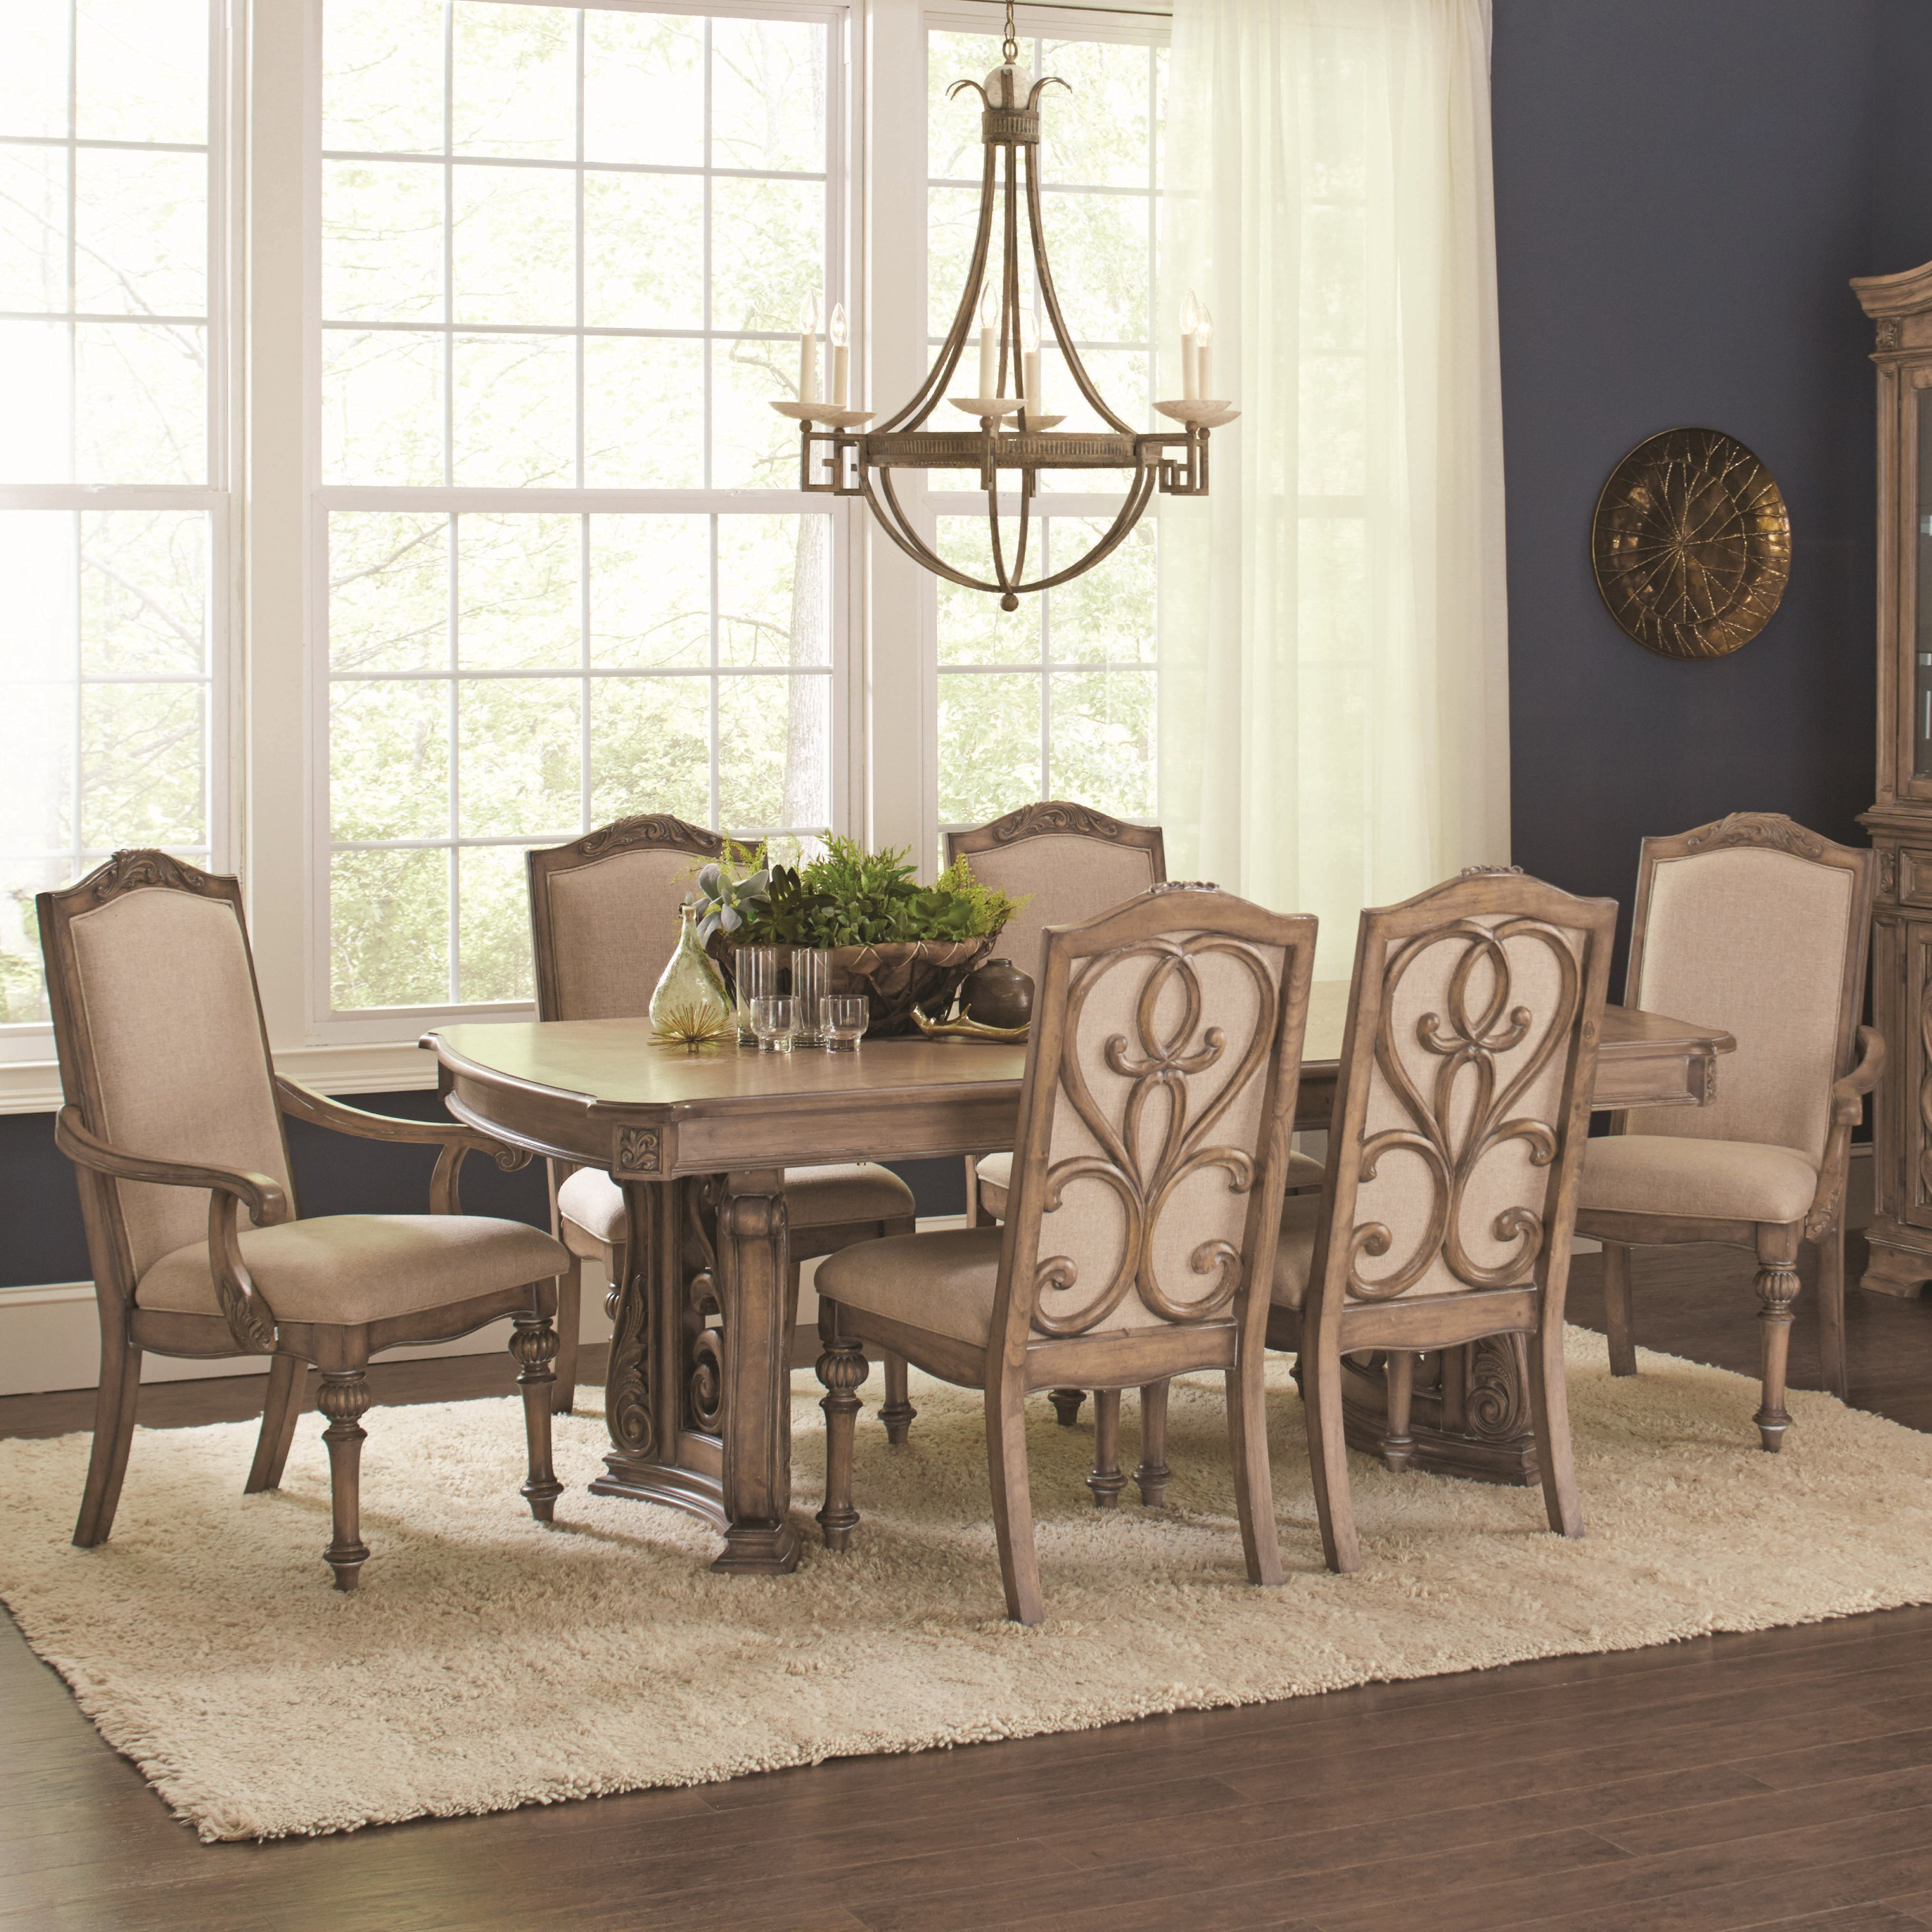 Ilana traditional 7 piece table and chair set with removable leaf